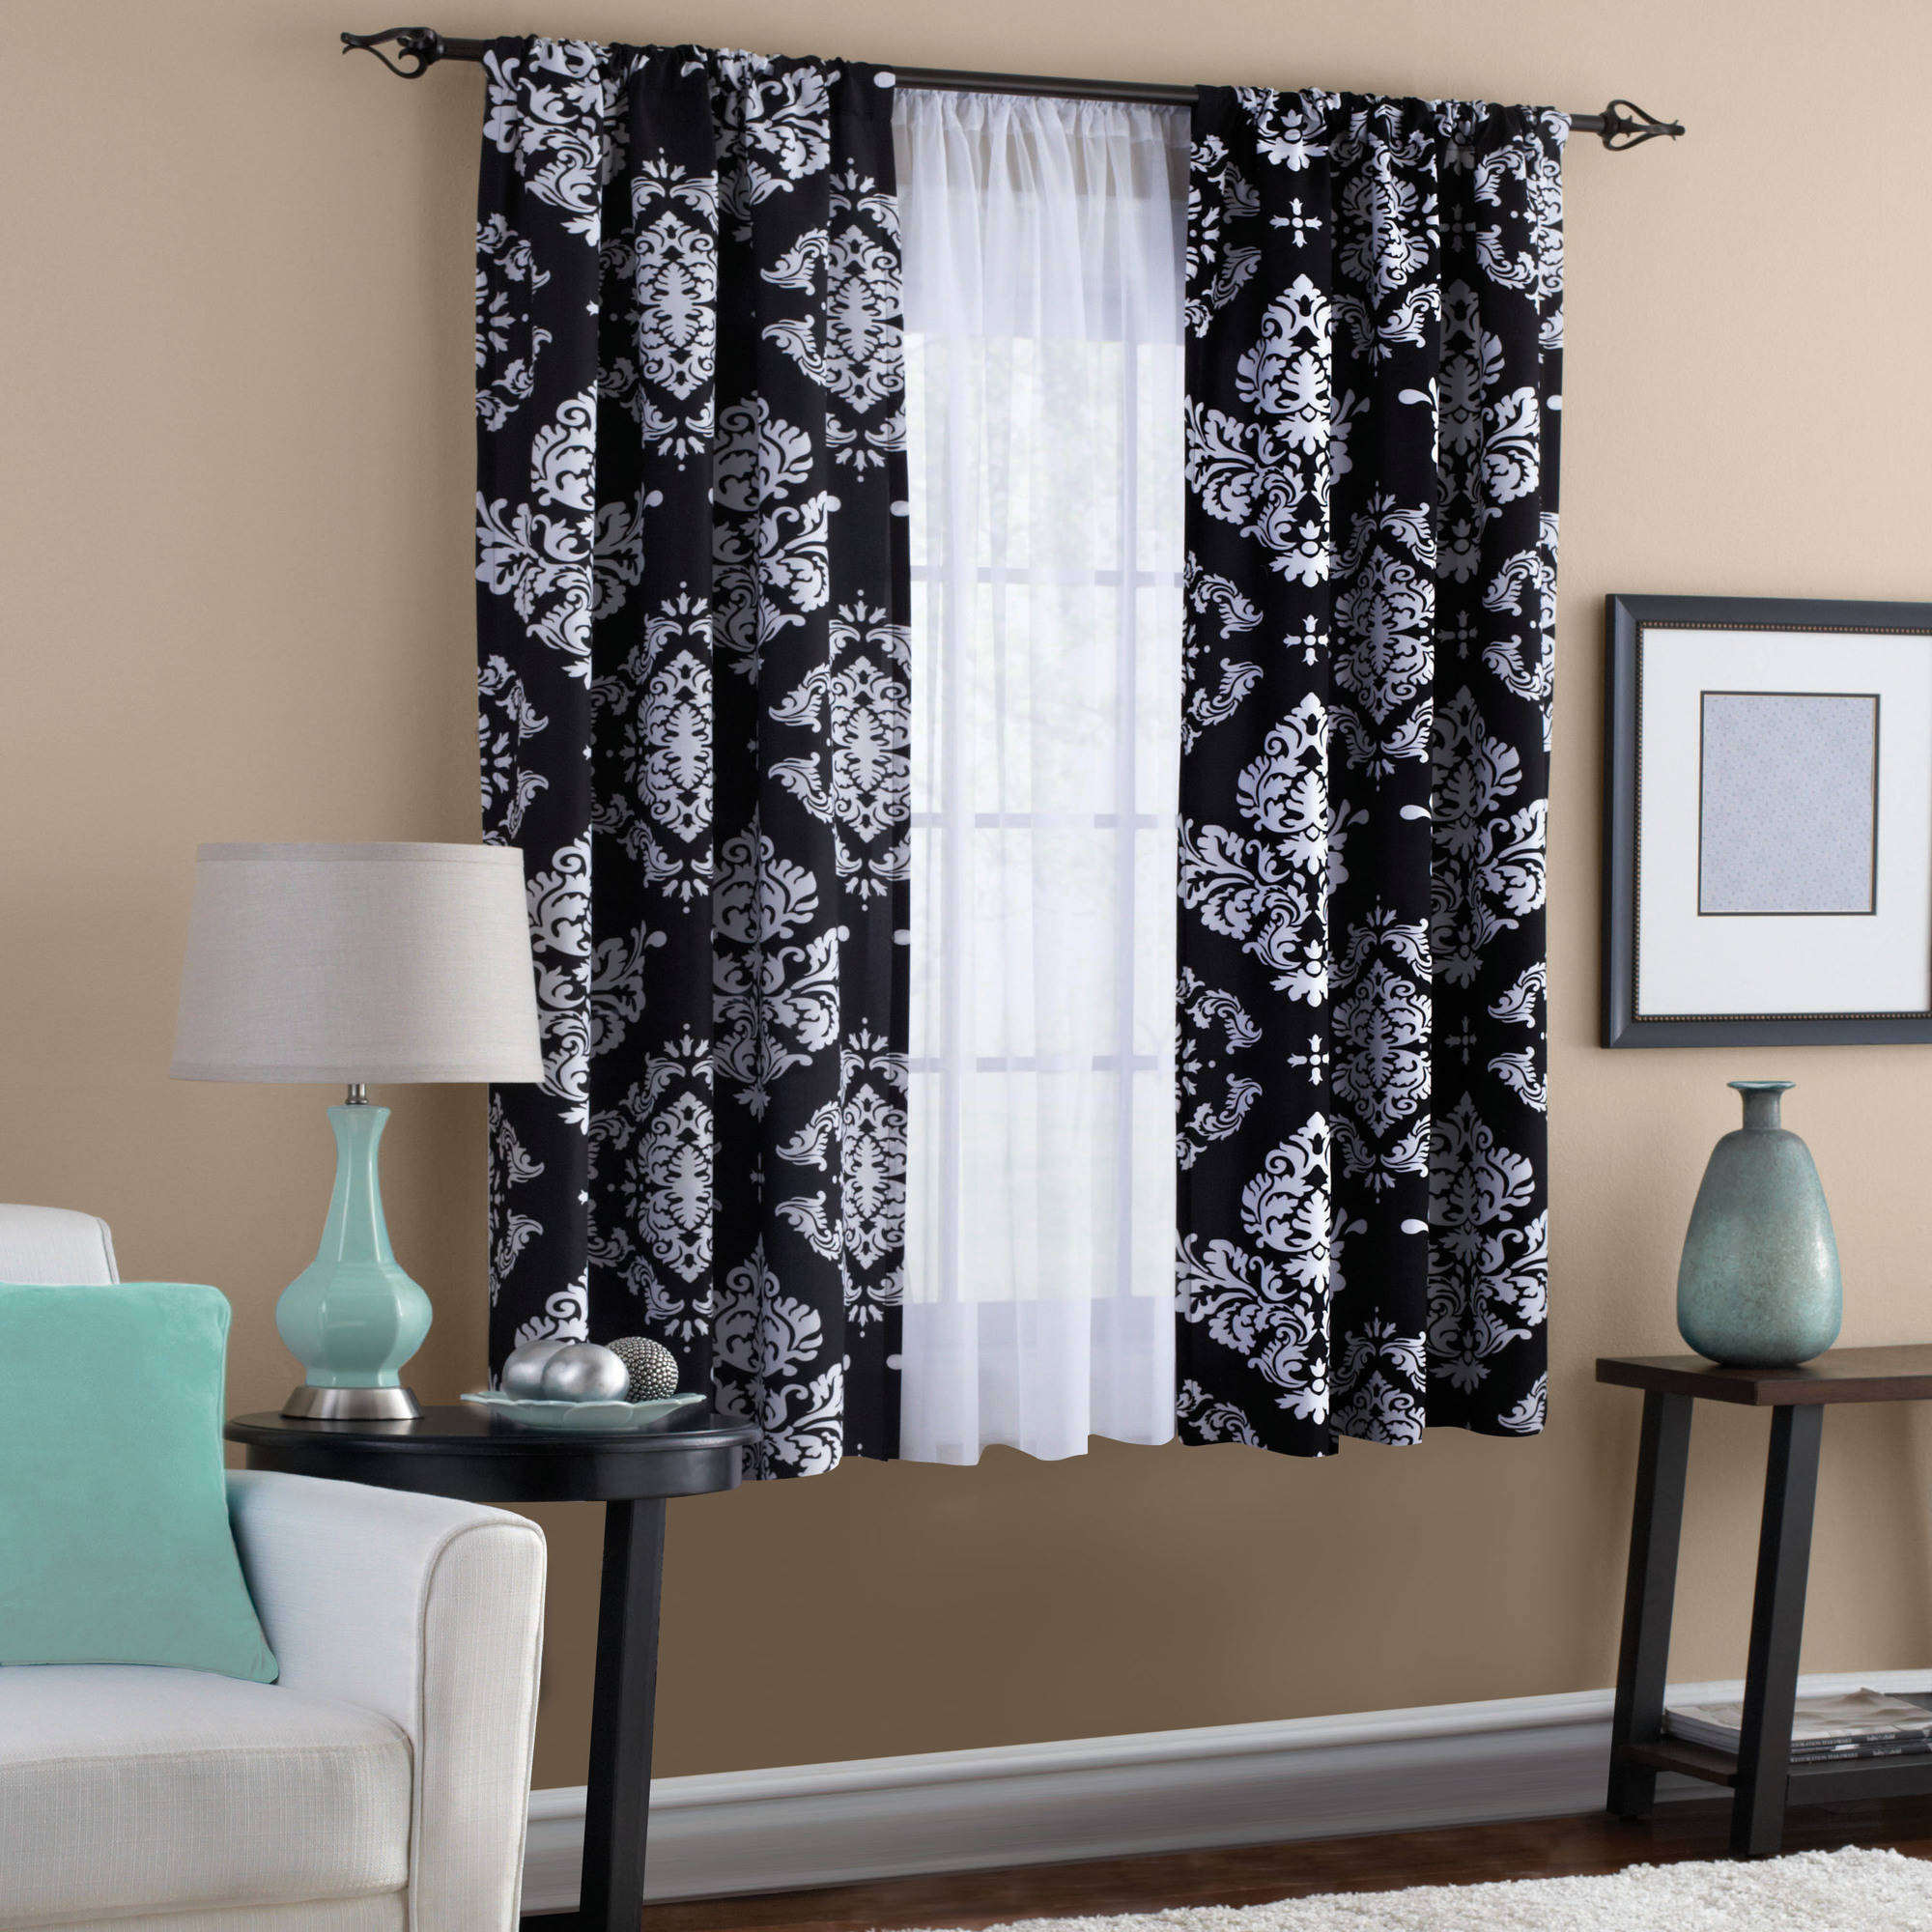 Merveilleux Classic Noir Black And White Window Curtain   Walmart.com